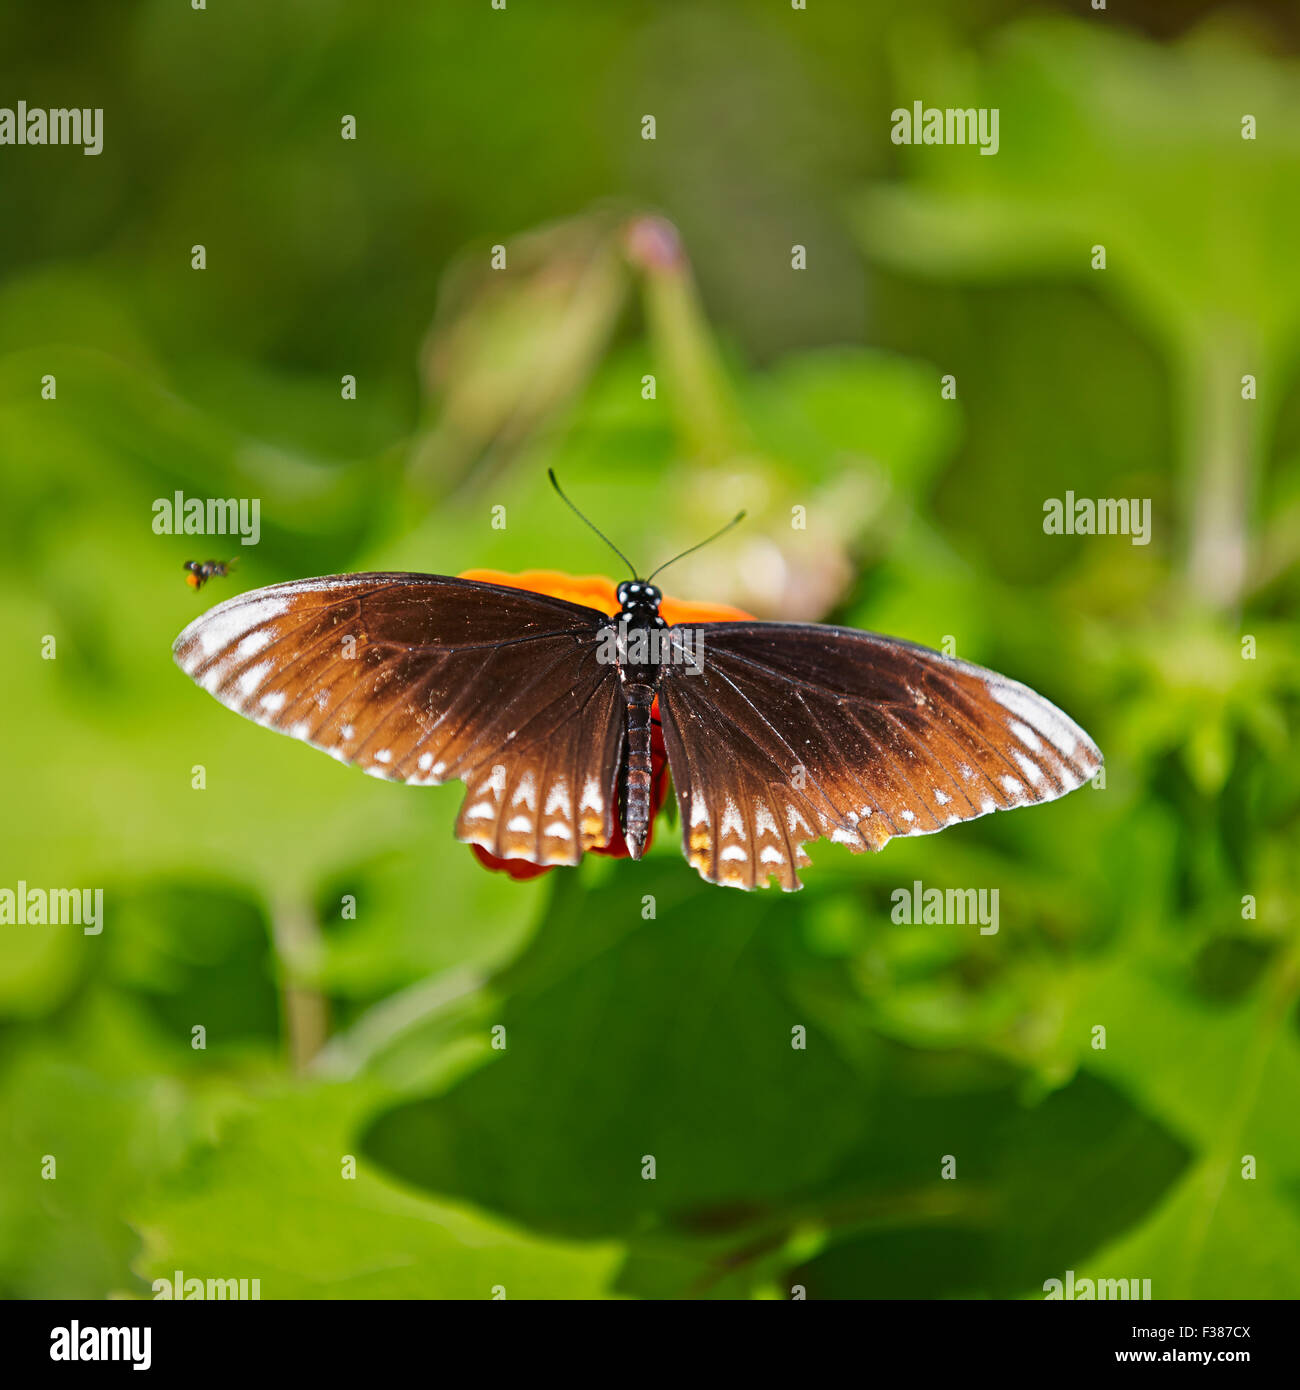 The Common Mime Butterfly, form Clytia. Scientific name: Papilio clytia. Banteay Srei Butterfly Centre, Siem Reap - Stock Image